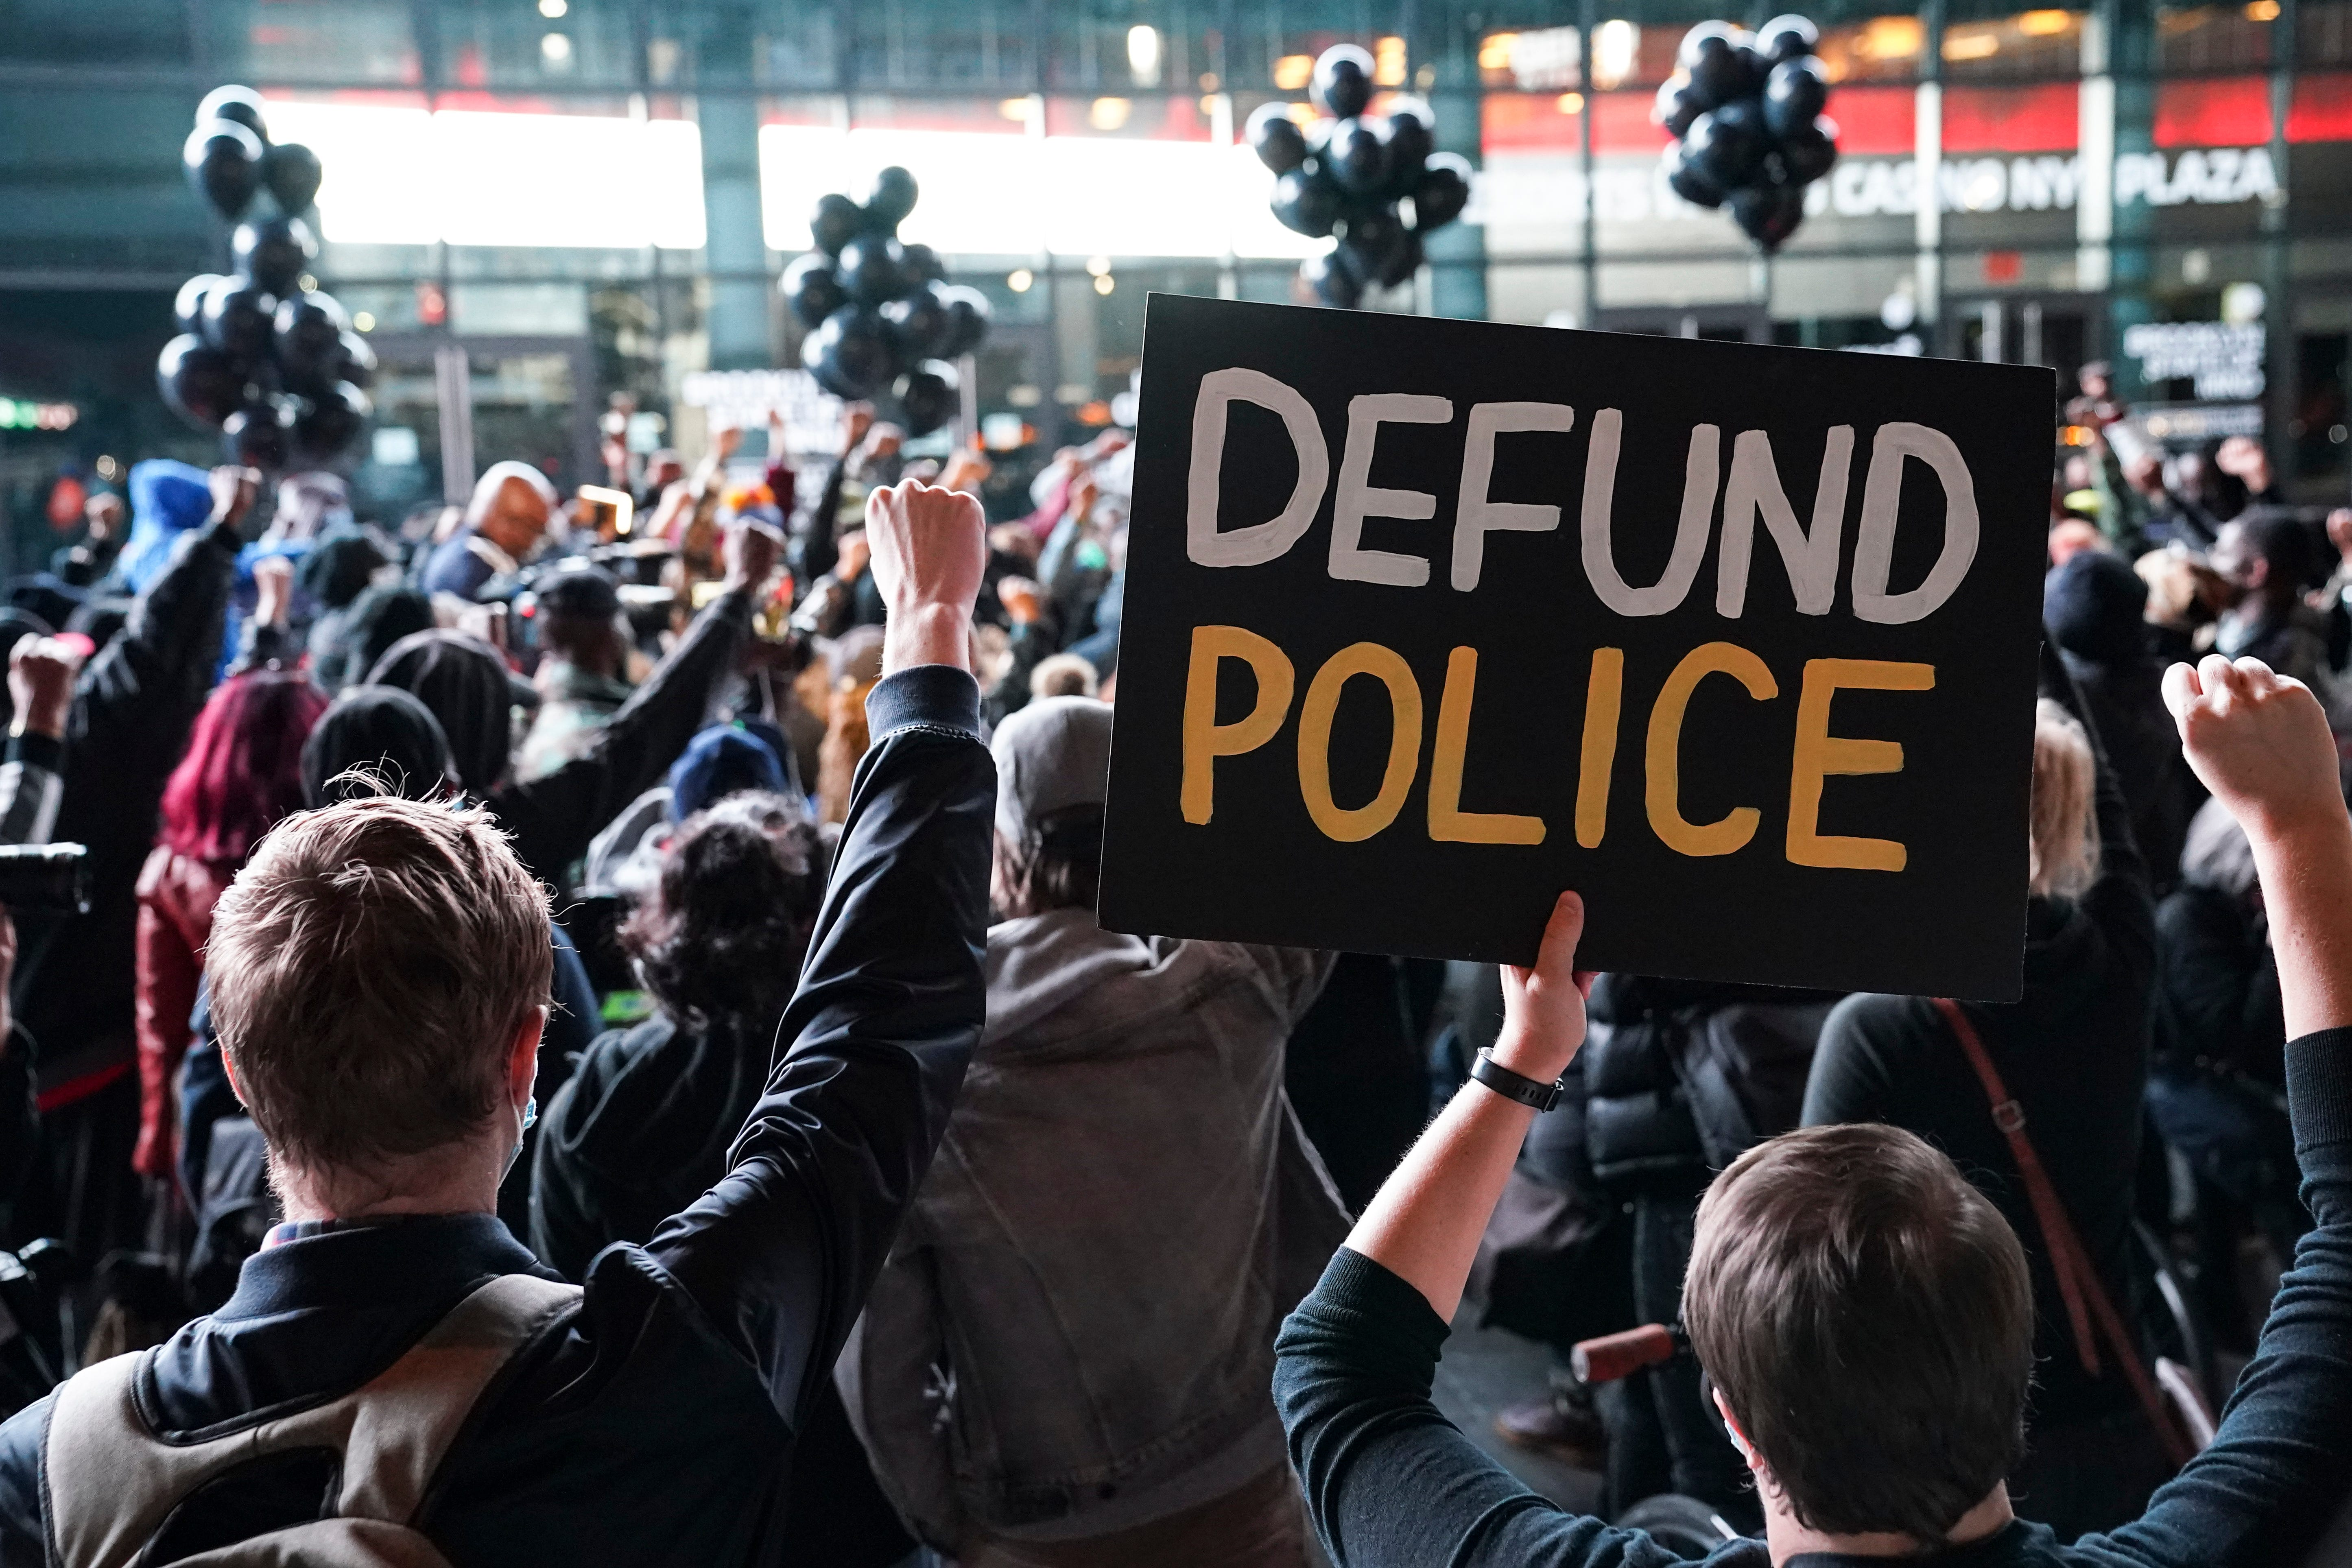 Is defunding the police  Obamacare 2.0 ? Democrats face dilemma with voters heading into 2022